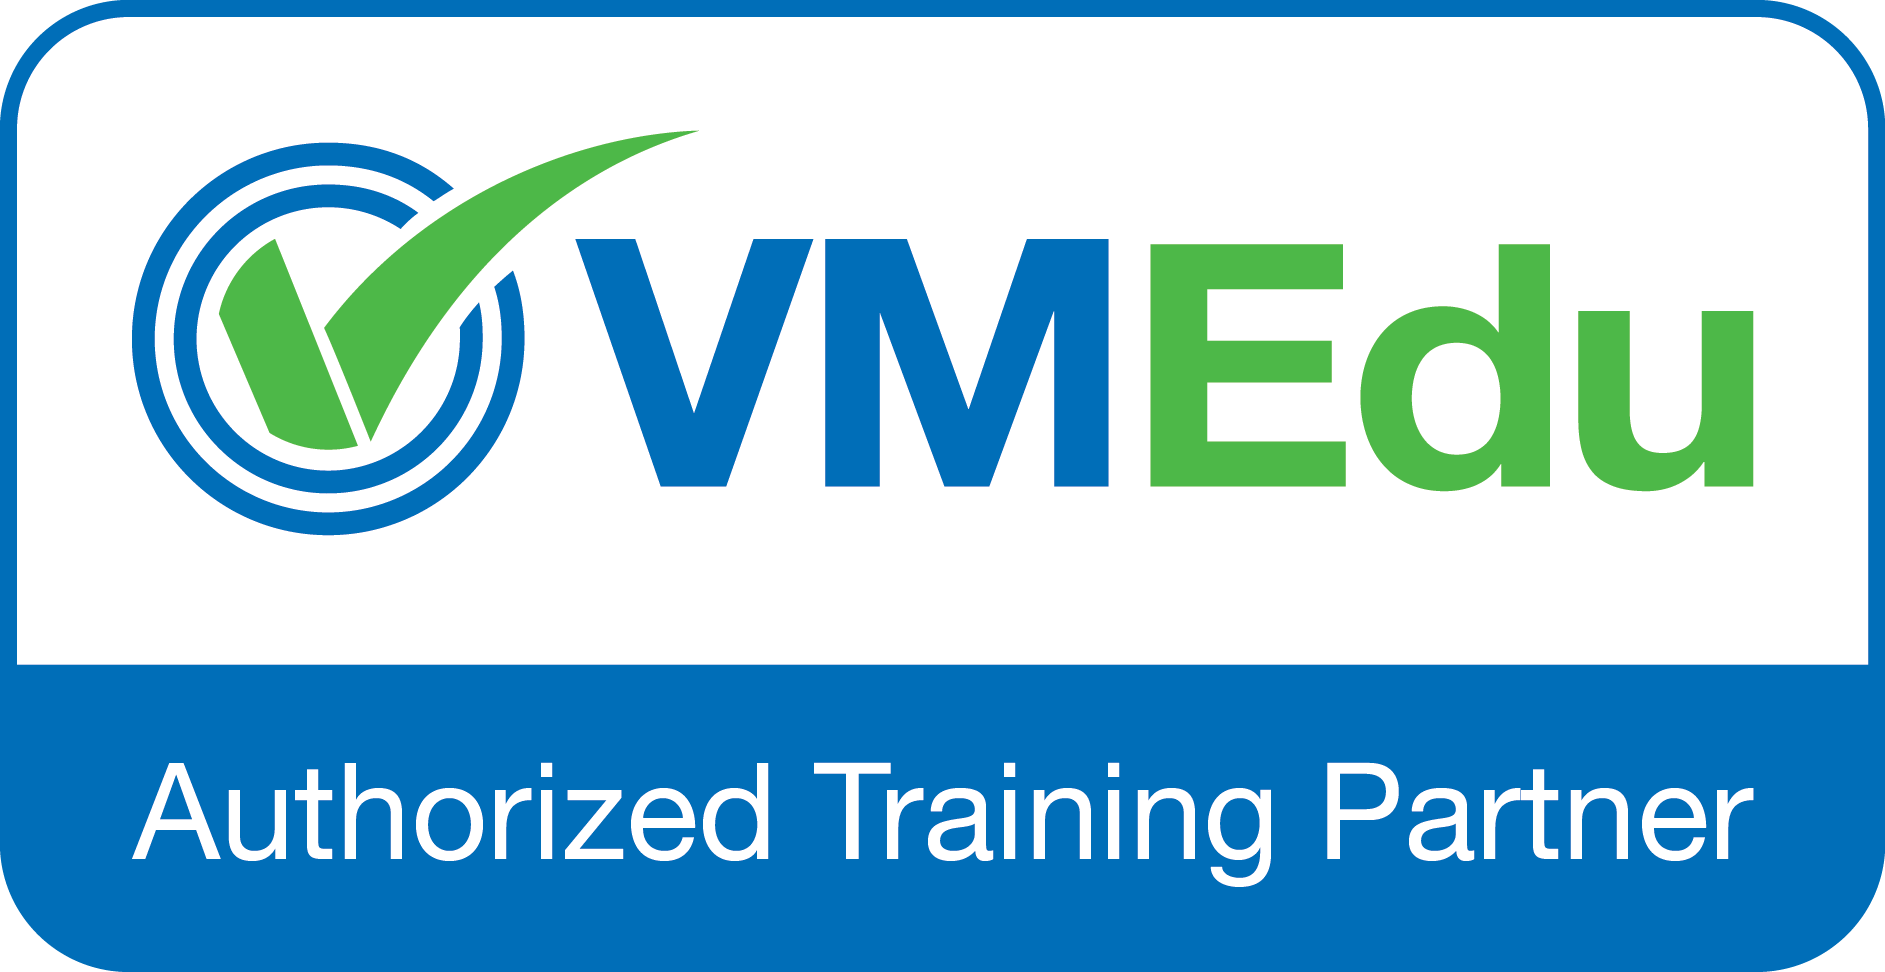 VmEdu Authorized Training Partner Logo